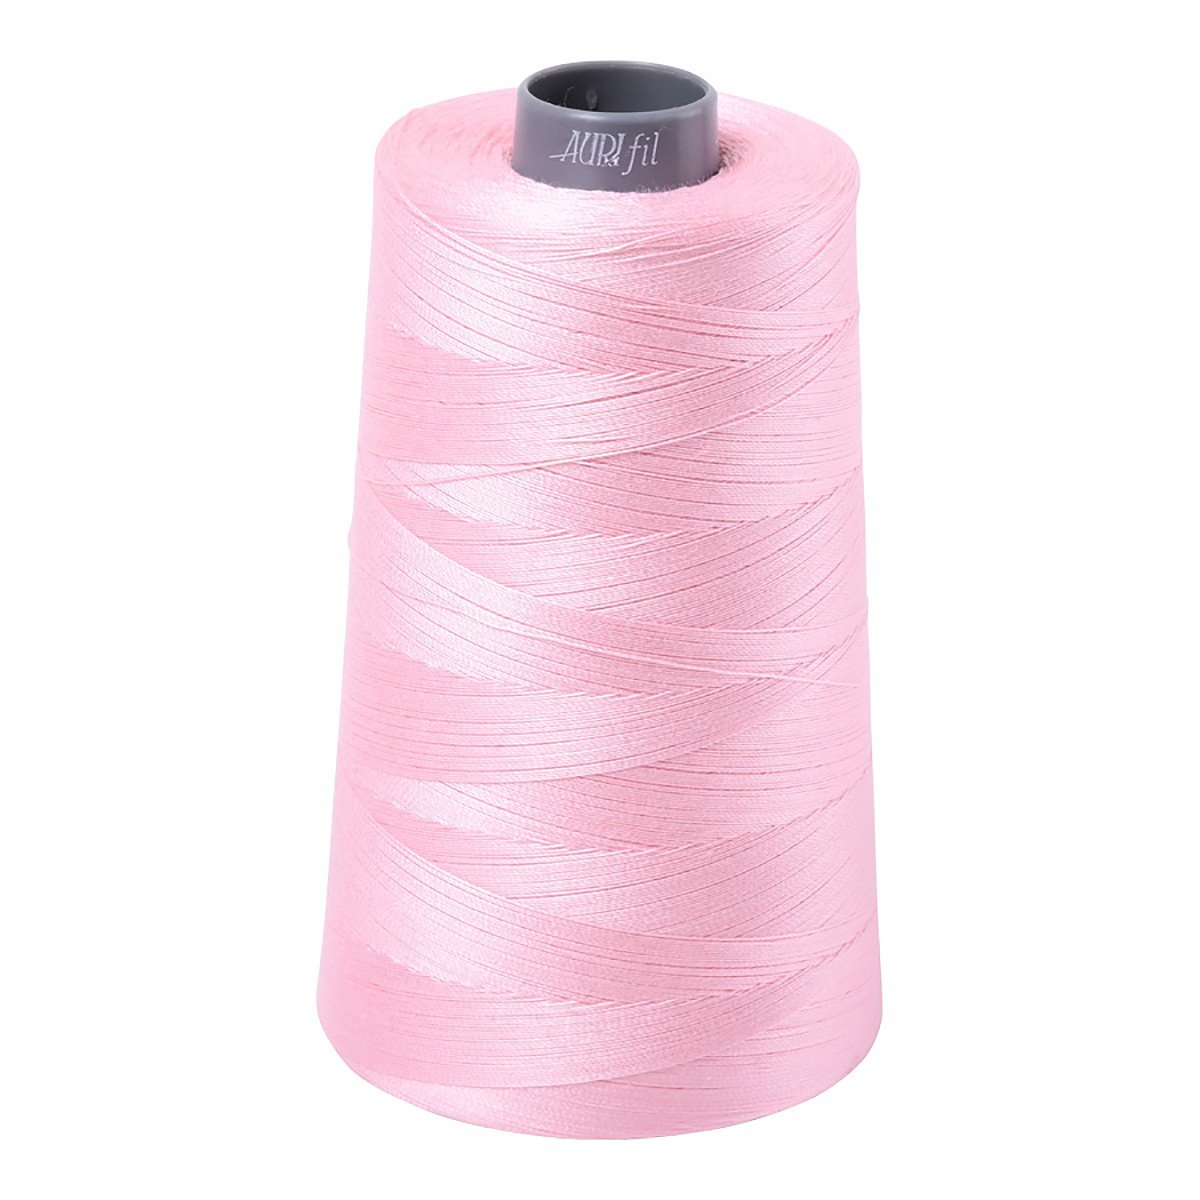 Mako (Cotton) Embroidery Thread 28wt 3609yds Baby Pink